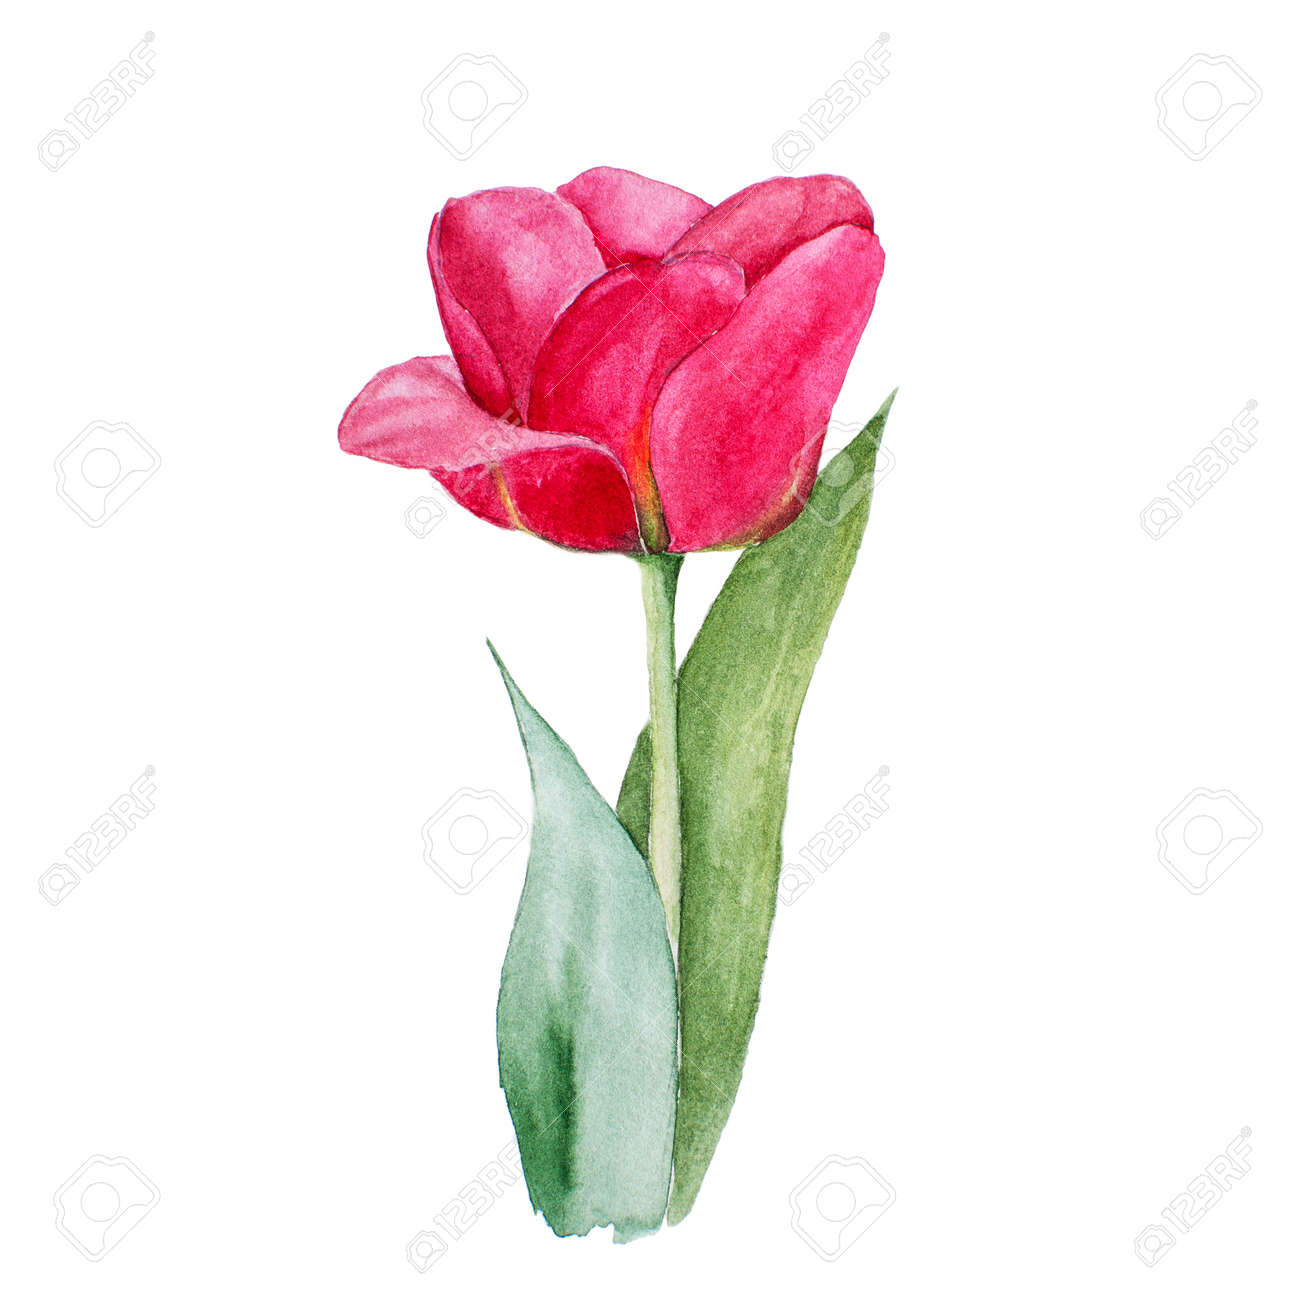 botanical watercolor illustration sketch of red tulip flower stock